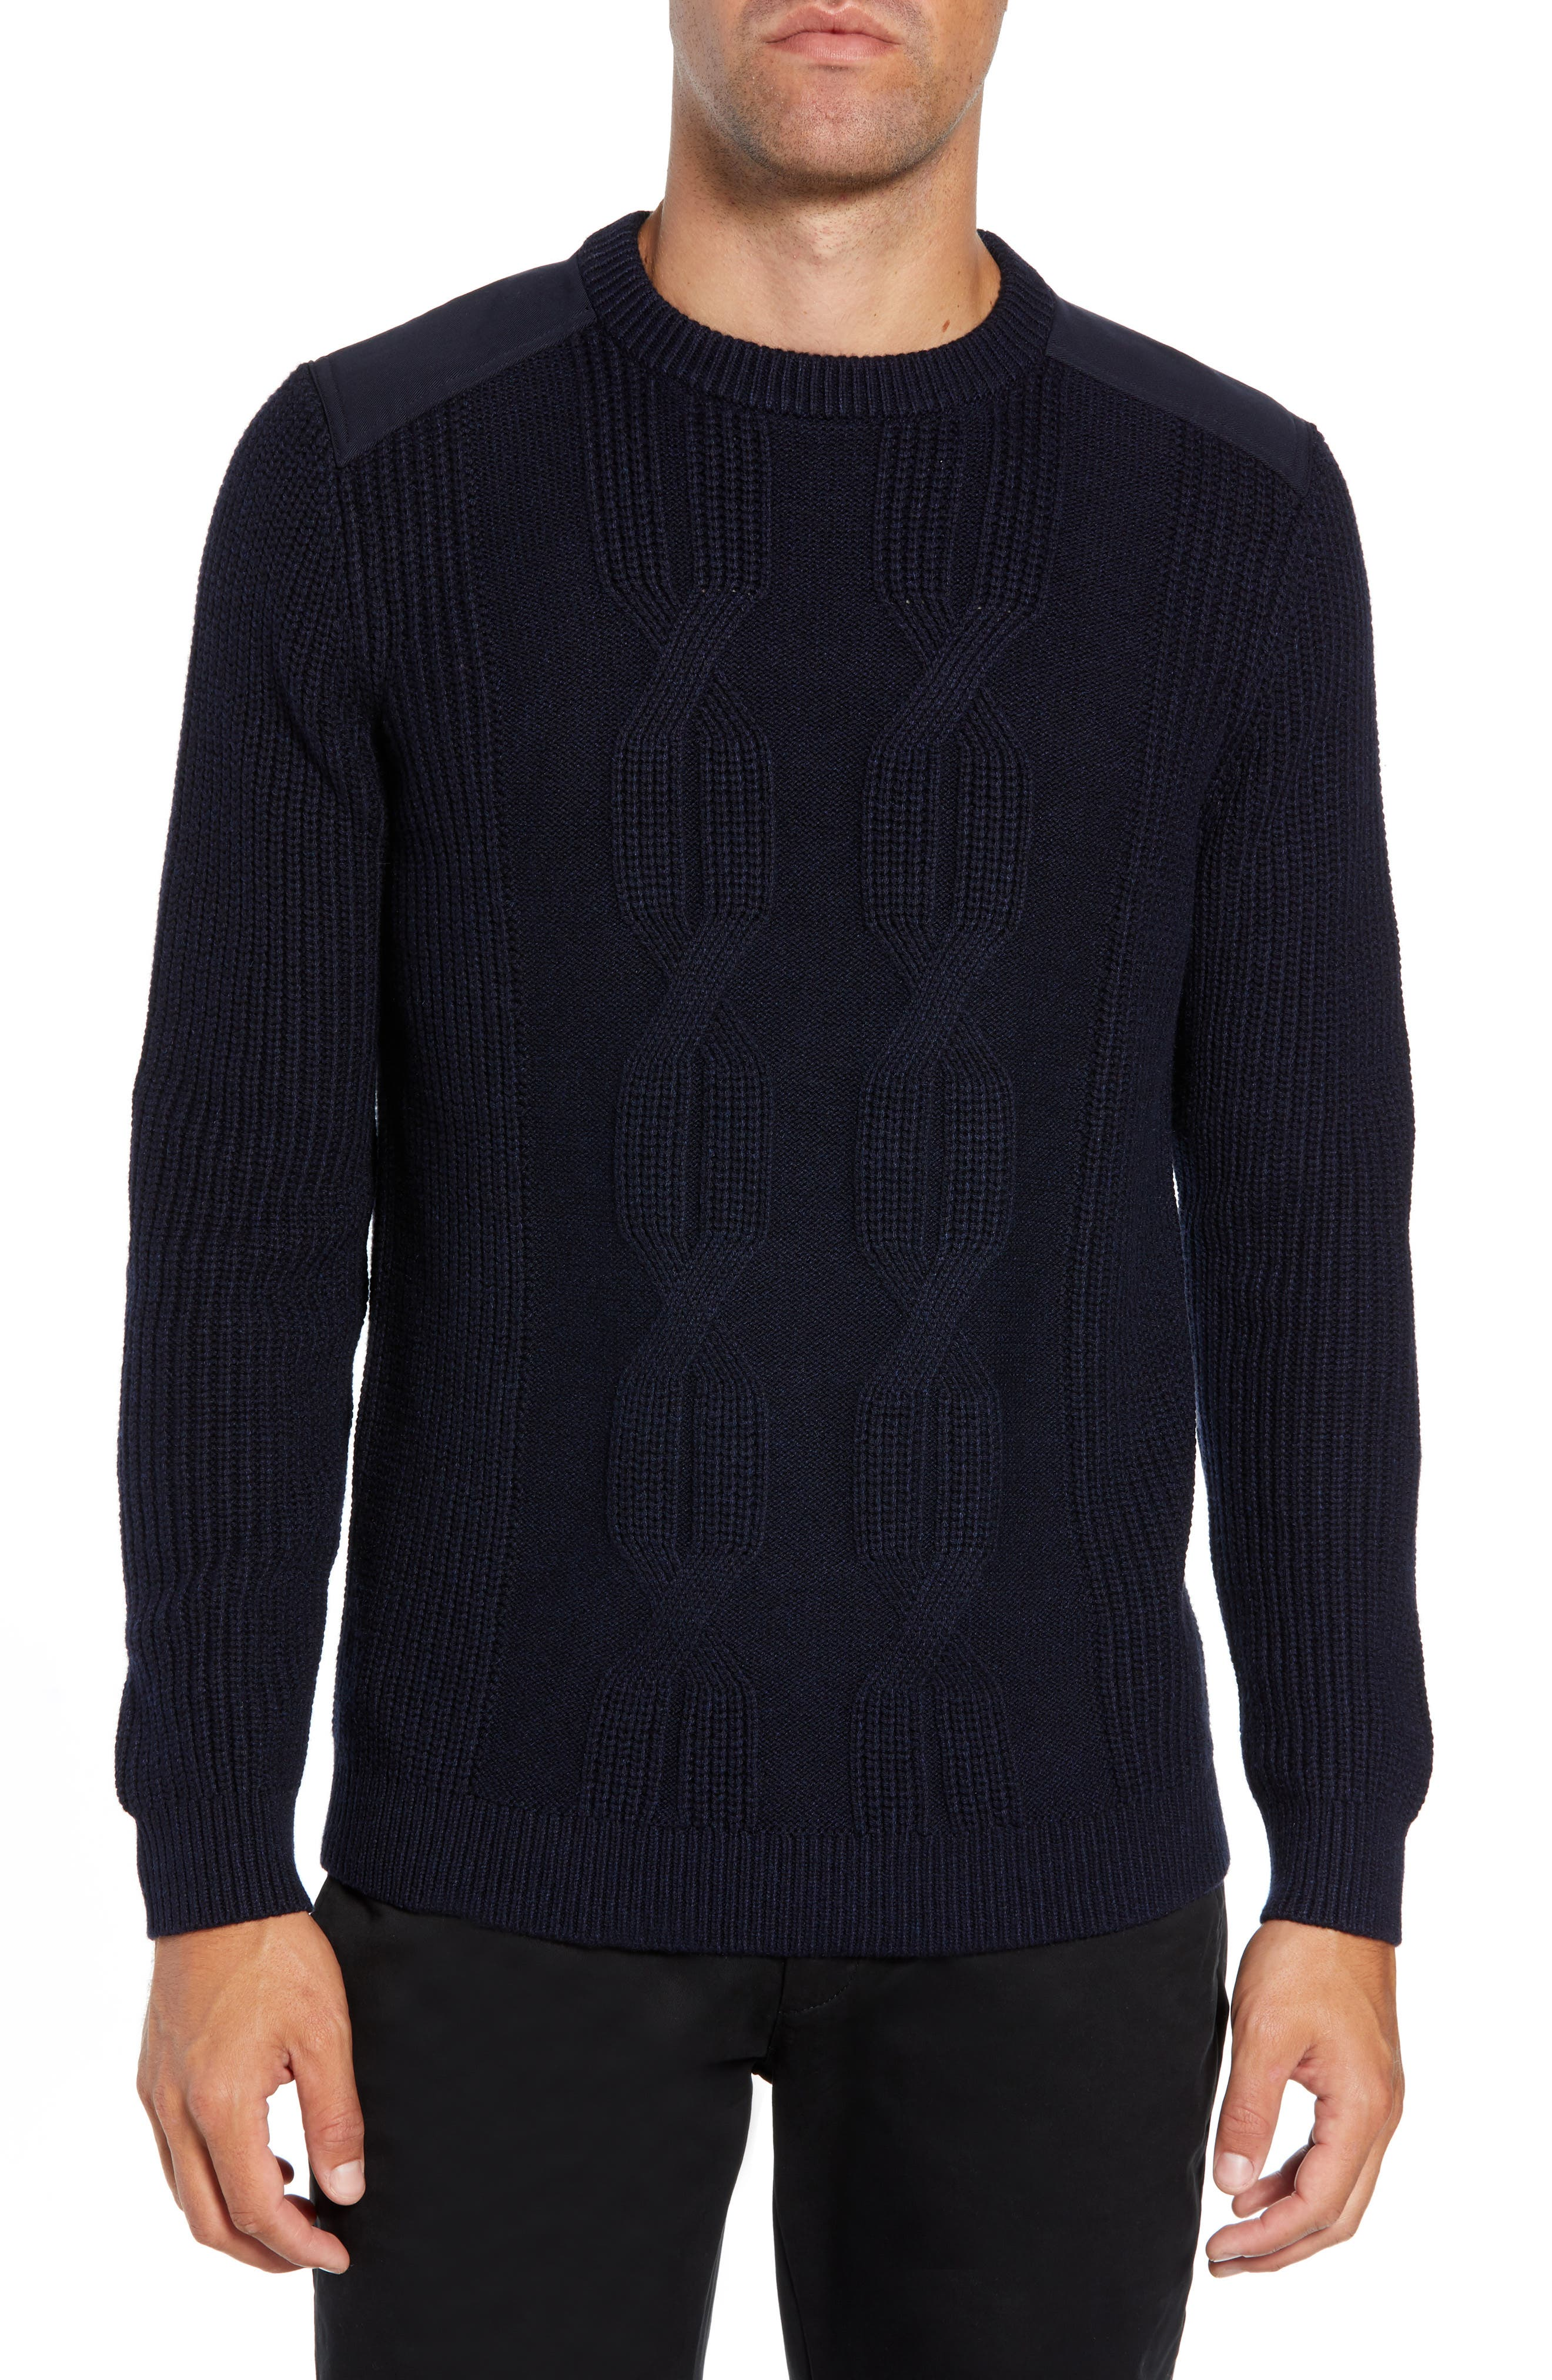 Laichi Trim Fit Cable Crewneck Sweater,                             Main thumbnail 1, color,                             NAVY